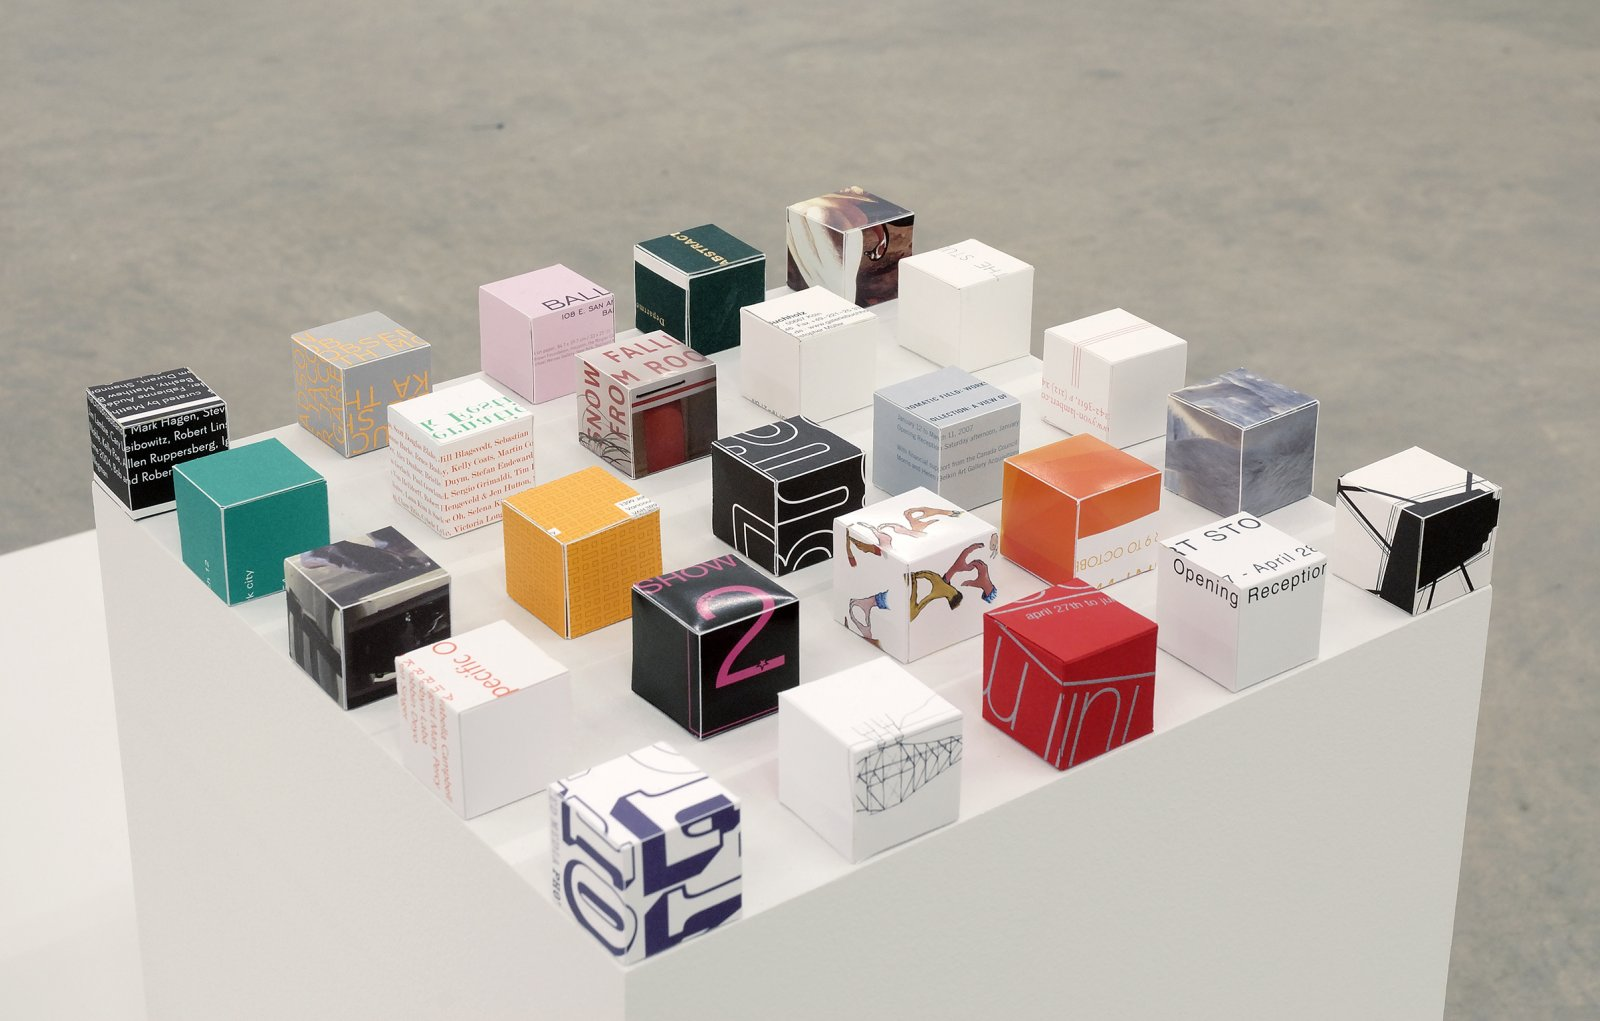 ​Arabella Campbell, 25 Cubes on a Square (for/form/from Sol Lewitt), 2002–2007, cut-up exhibition invitations, plinth, 12 x 12 x 12 in. (31 x 31 x 31 cm) by